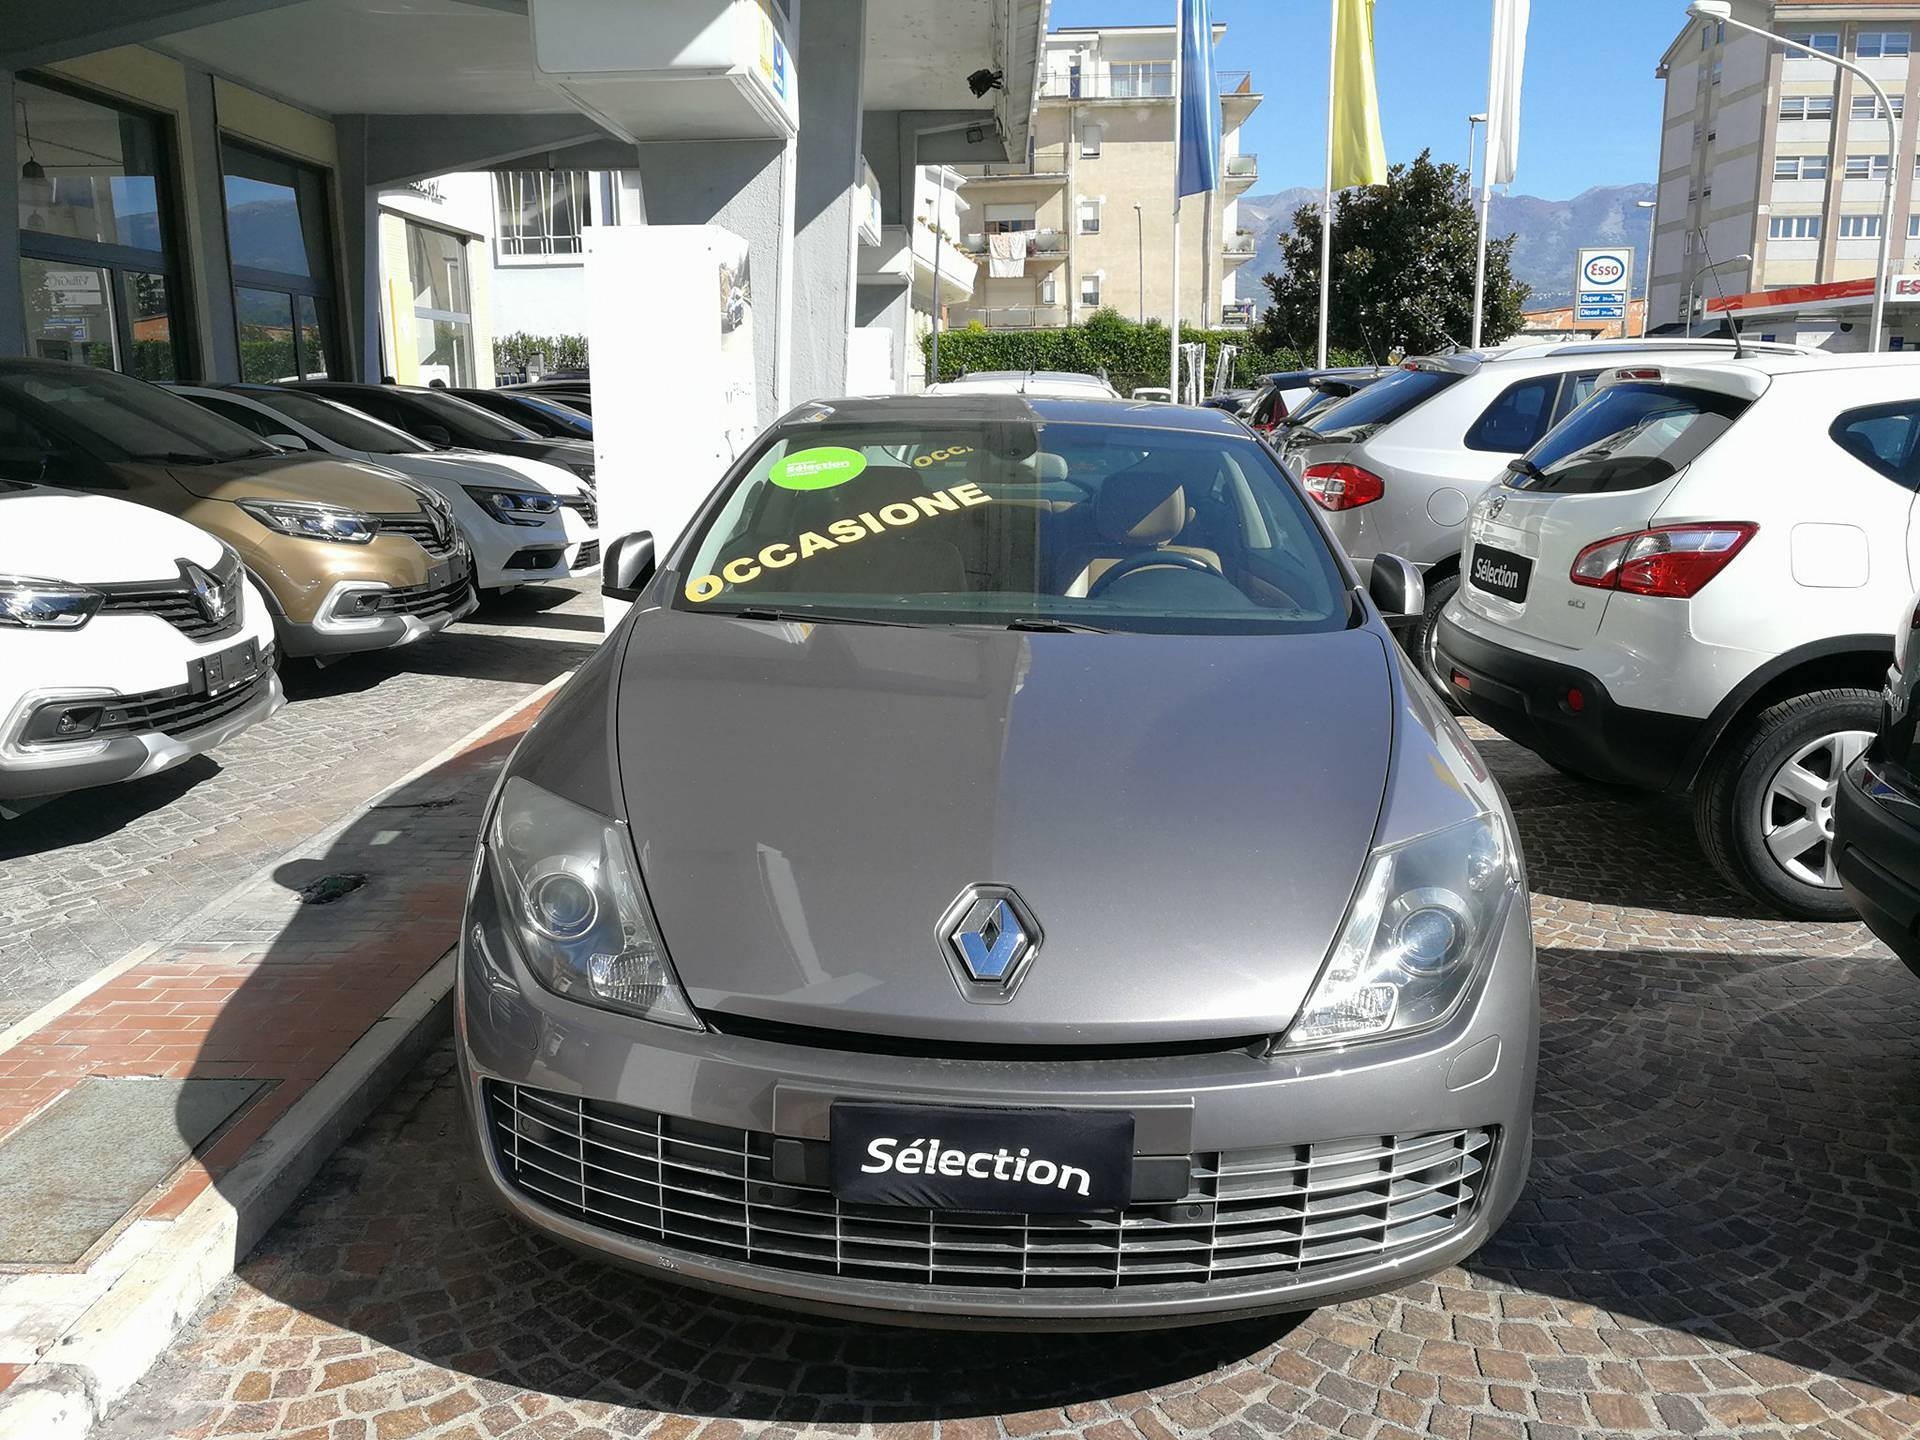 renault laguna coupe 39 2 0 dci 180 cv 4 control renault oeo newauto sora. Black Bedroom Furniture Sets. Home Design Ideas